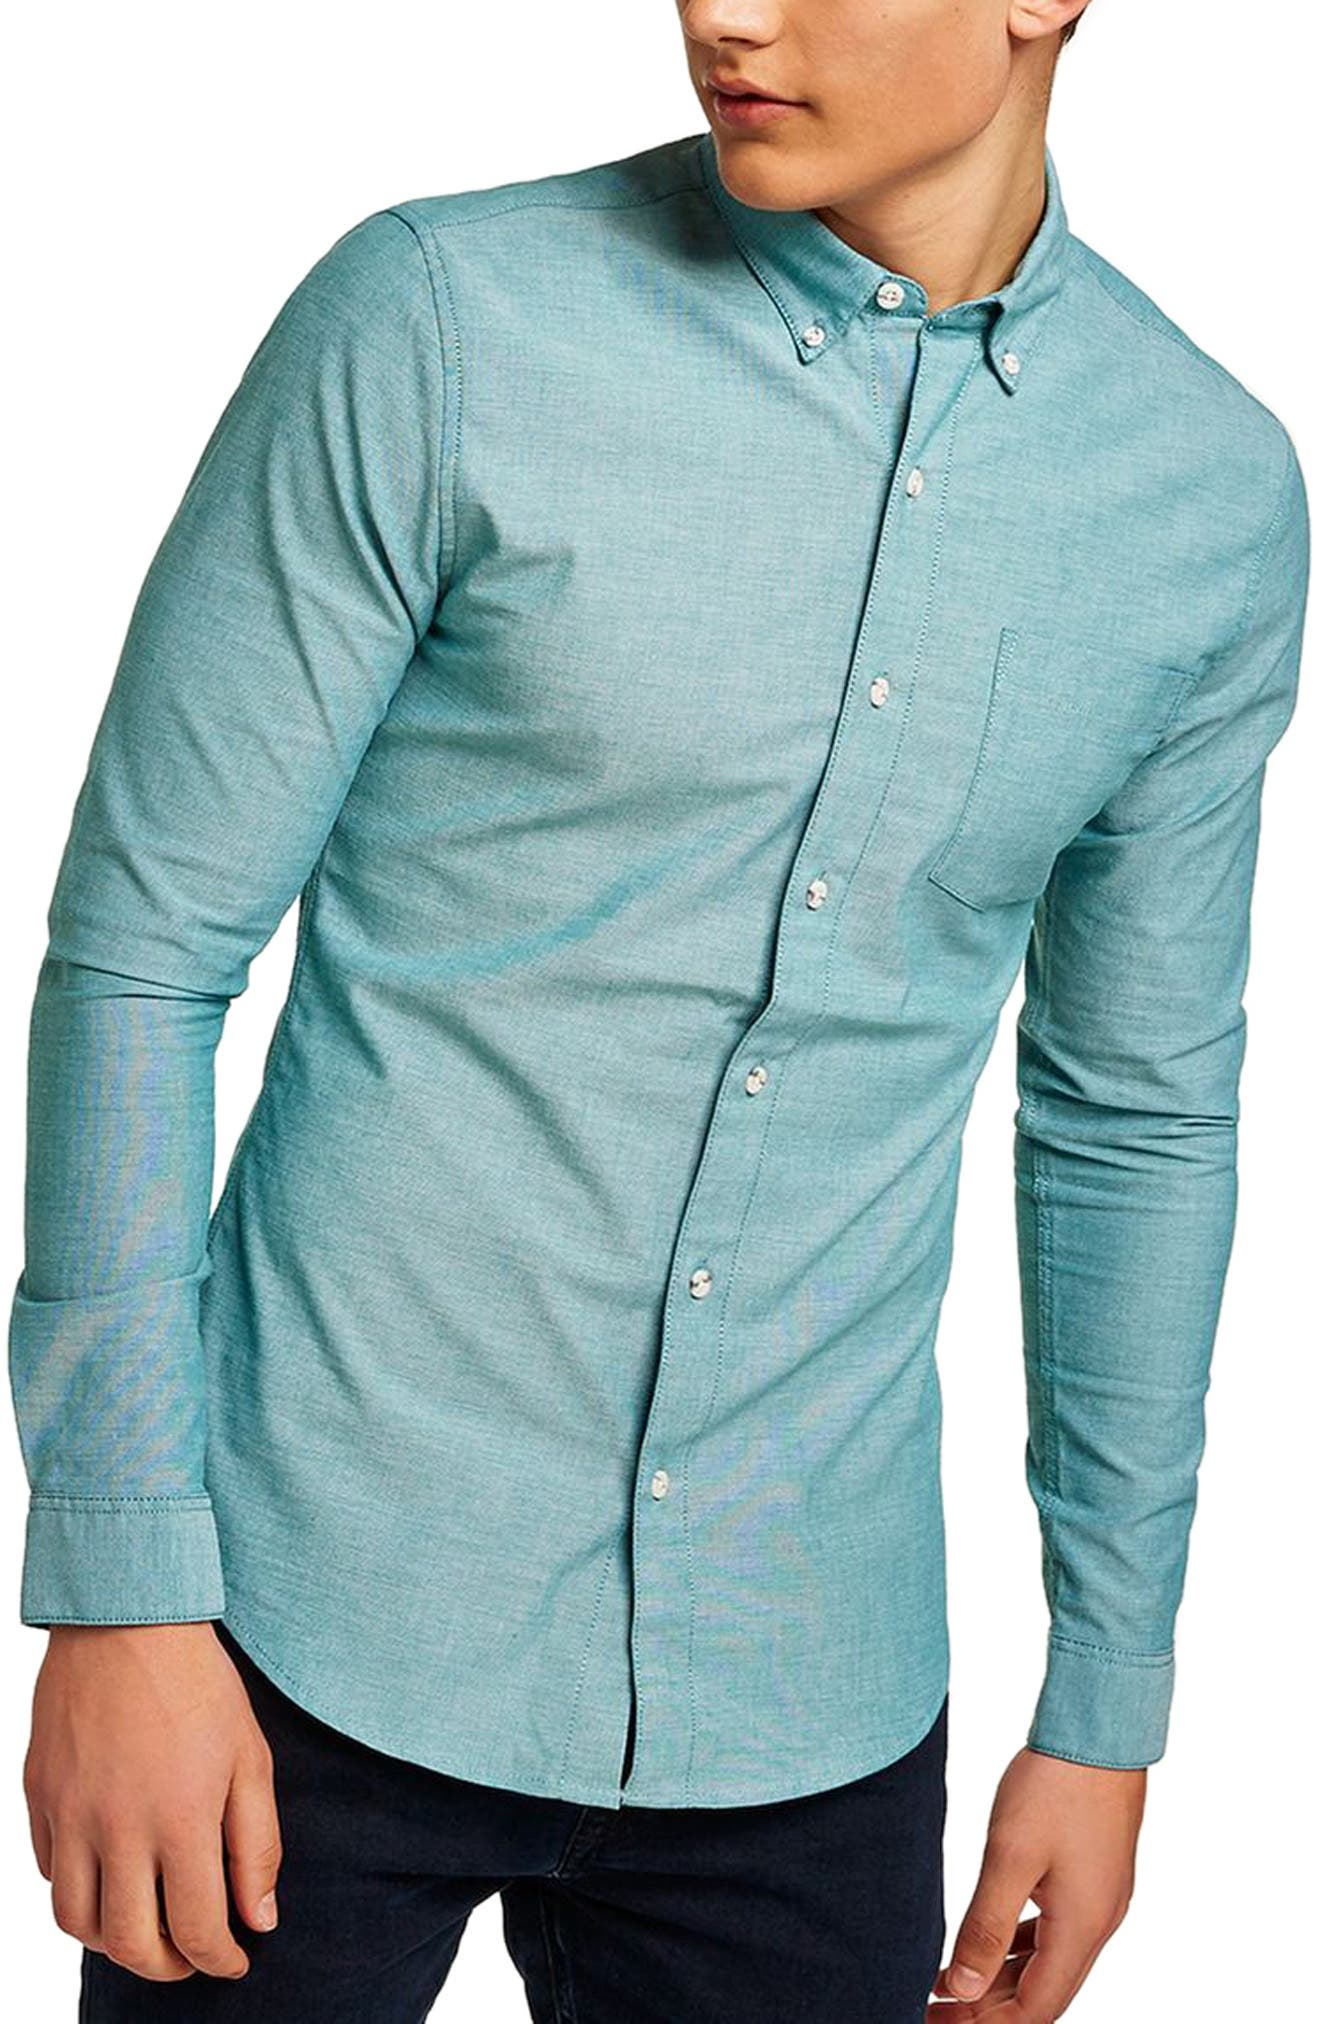 Muscle Fit Oxford Shirt,                             Main thumbnail 1, color,